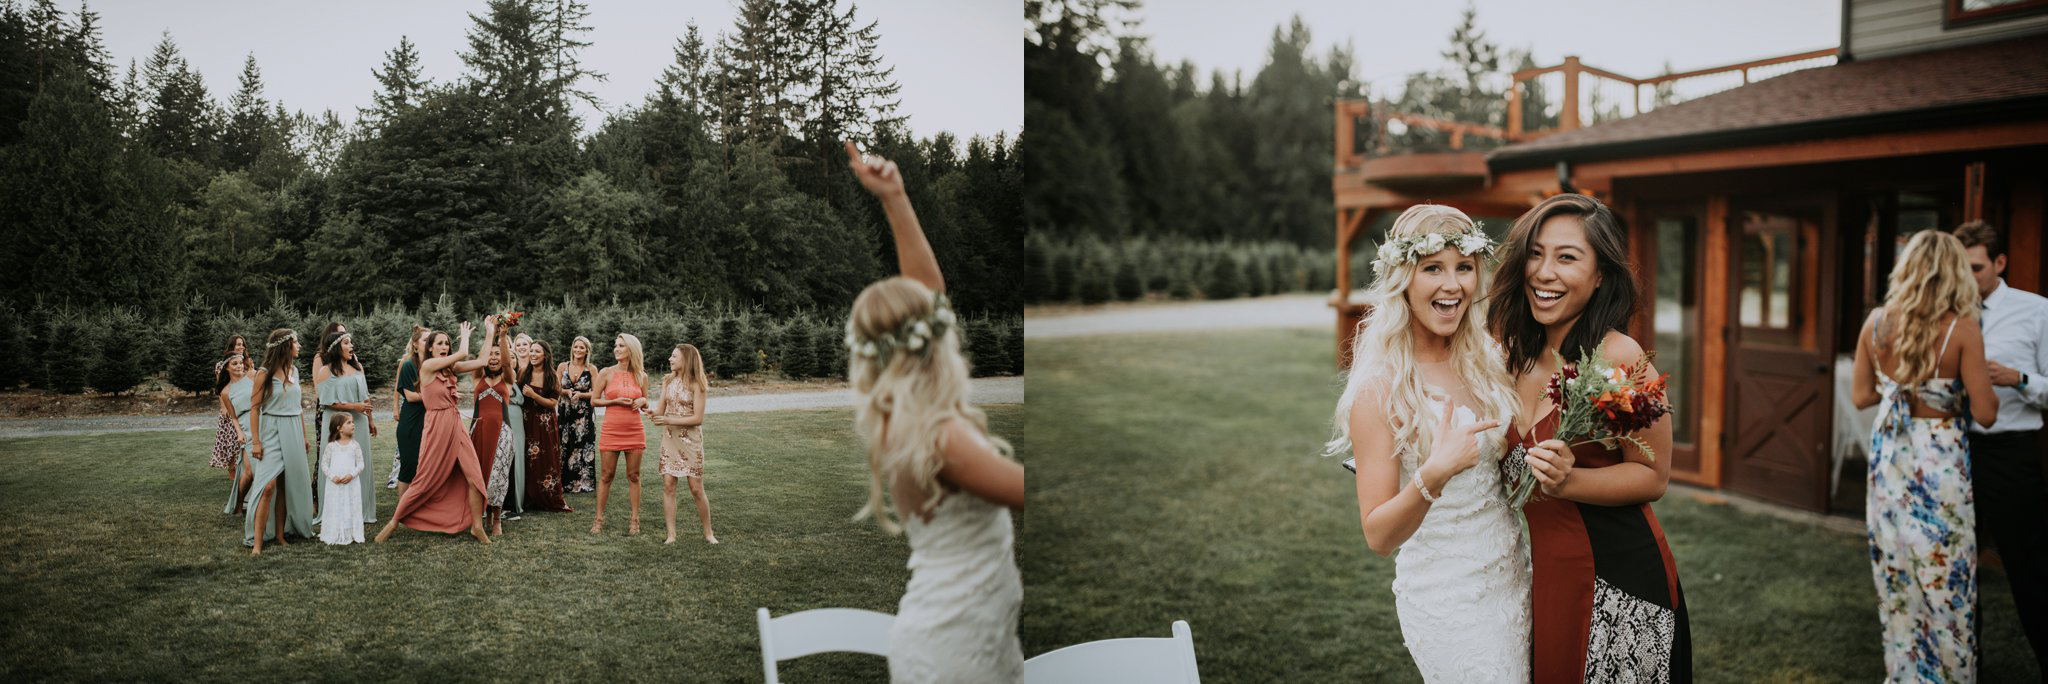 trinity-tree-farm-issaquah-washington-wedding-seattle-lifestyle-photographer-caitlyn-nikula-photography-125.jpg